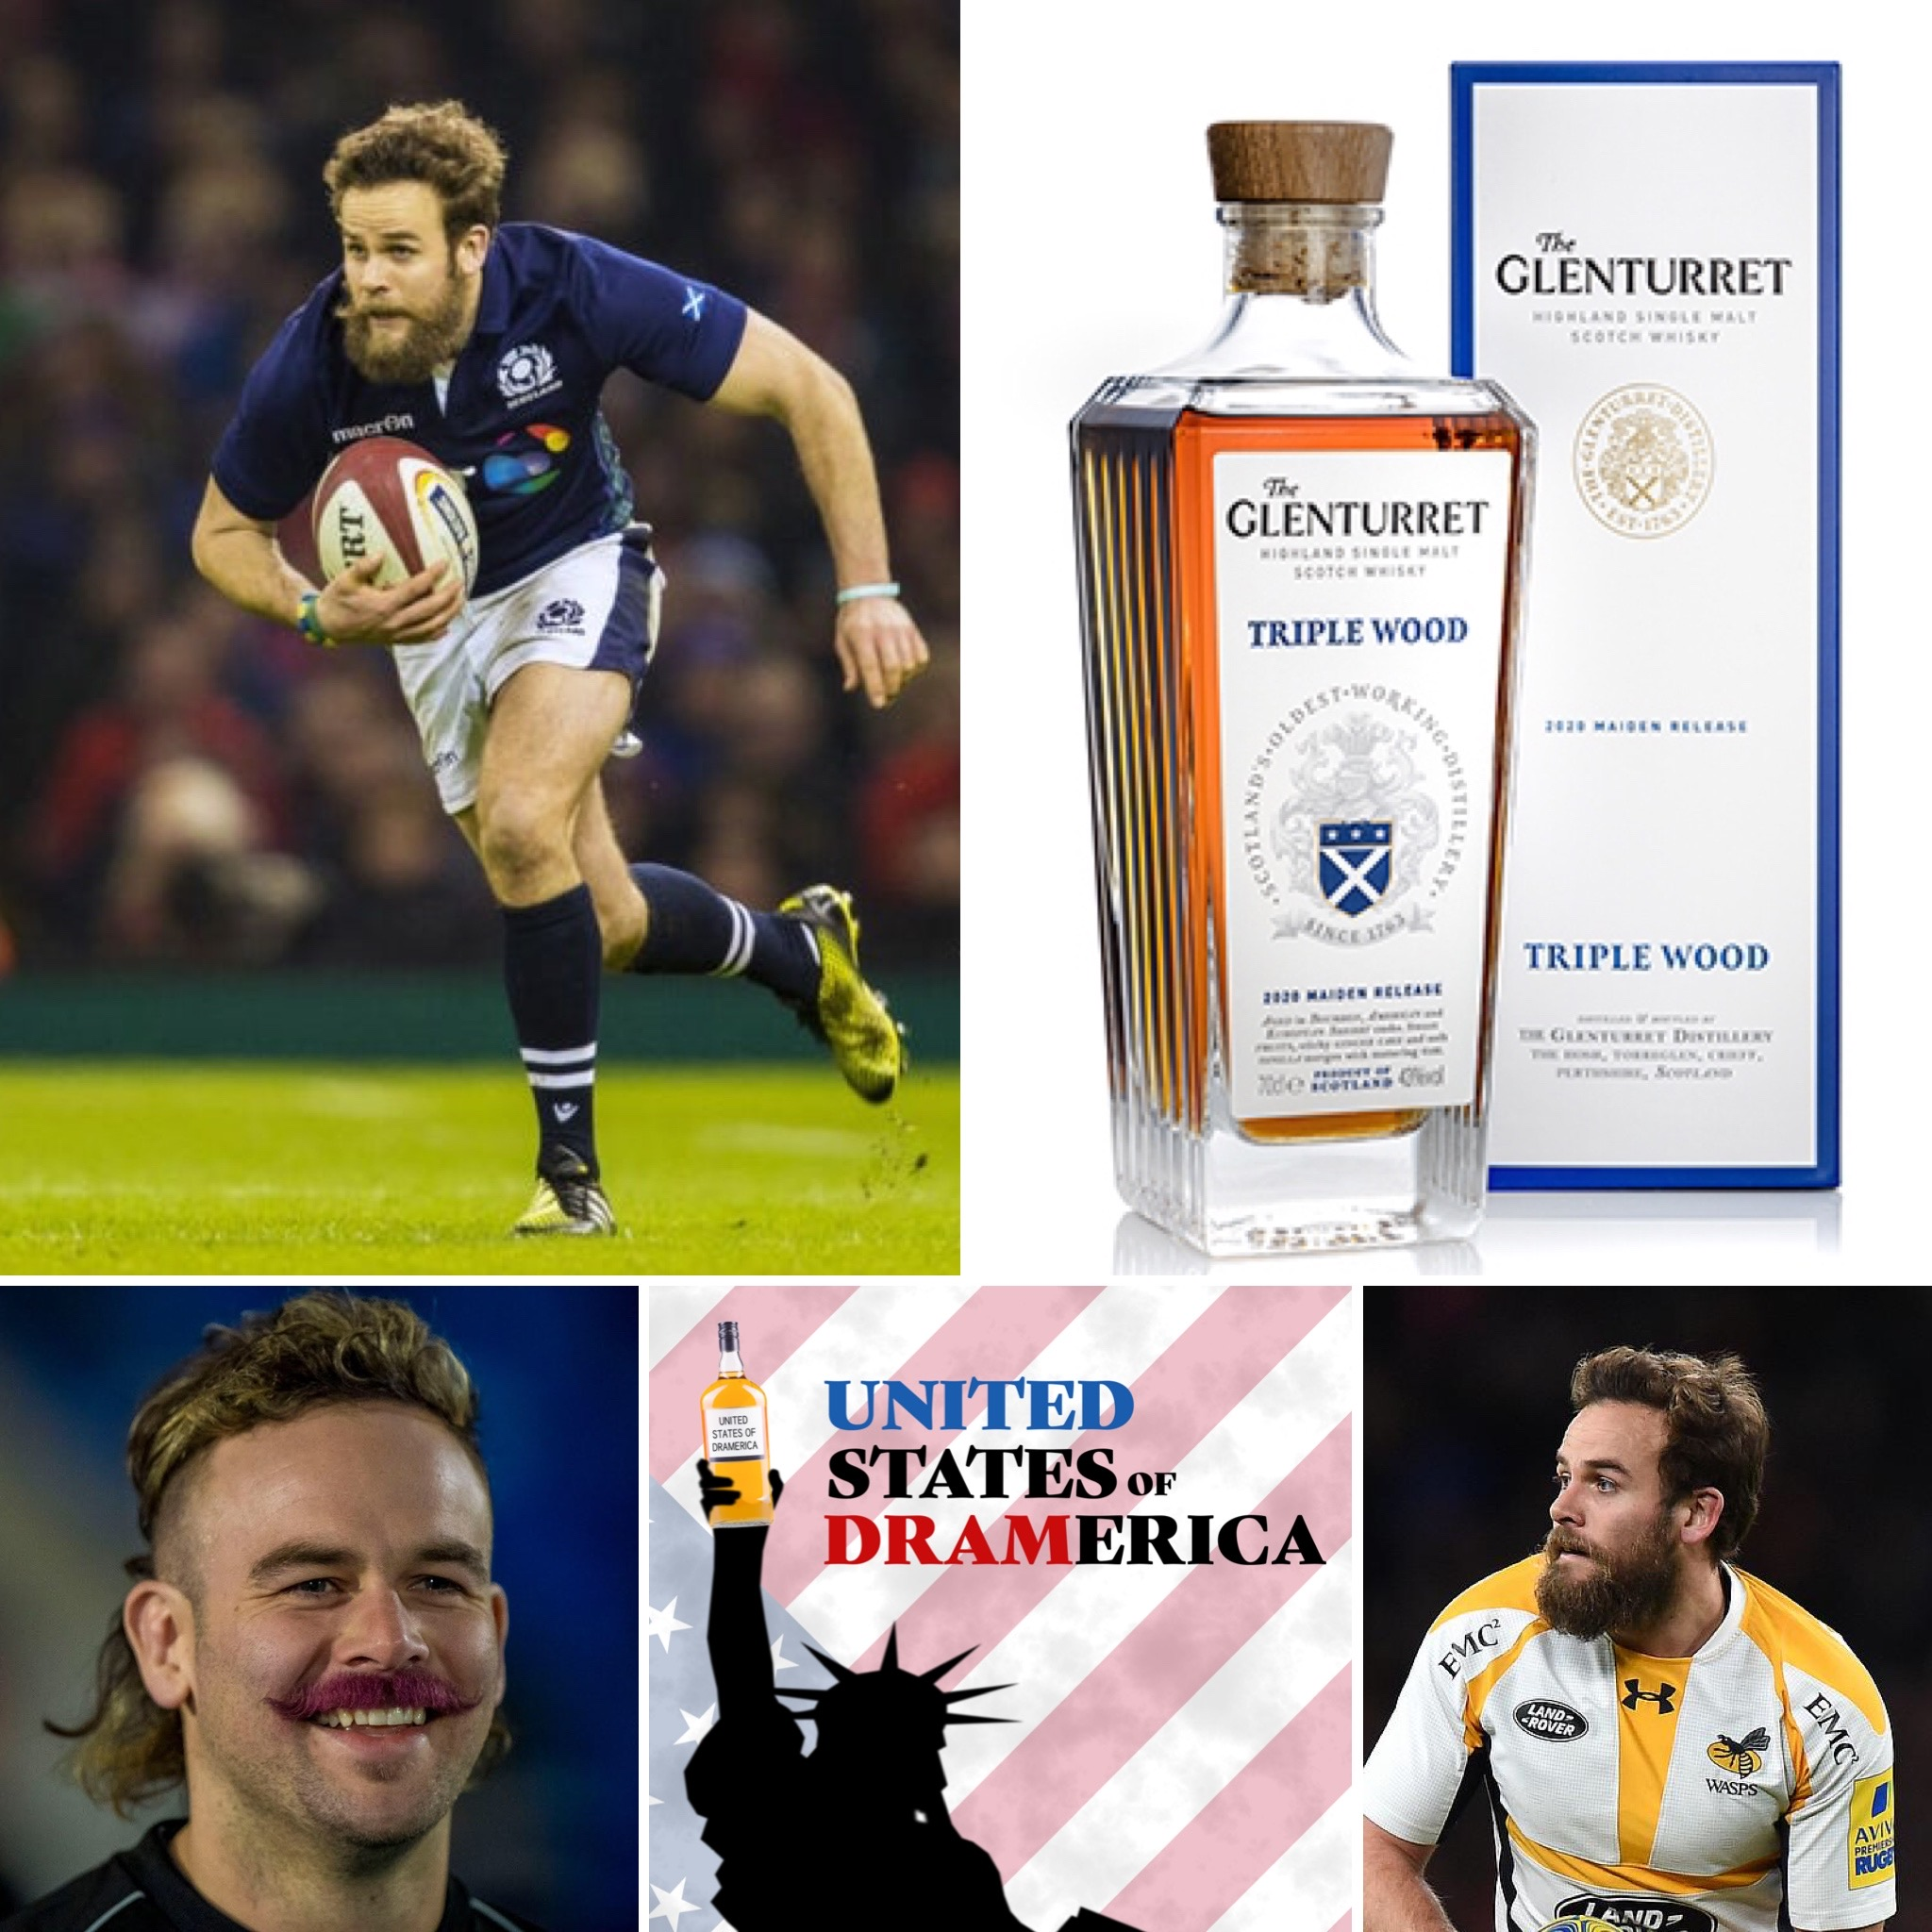 Episode 45 - Ruaridh Jackson, ex-rugby player and Glenturret whisky